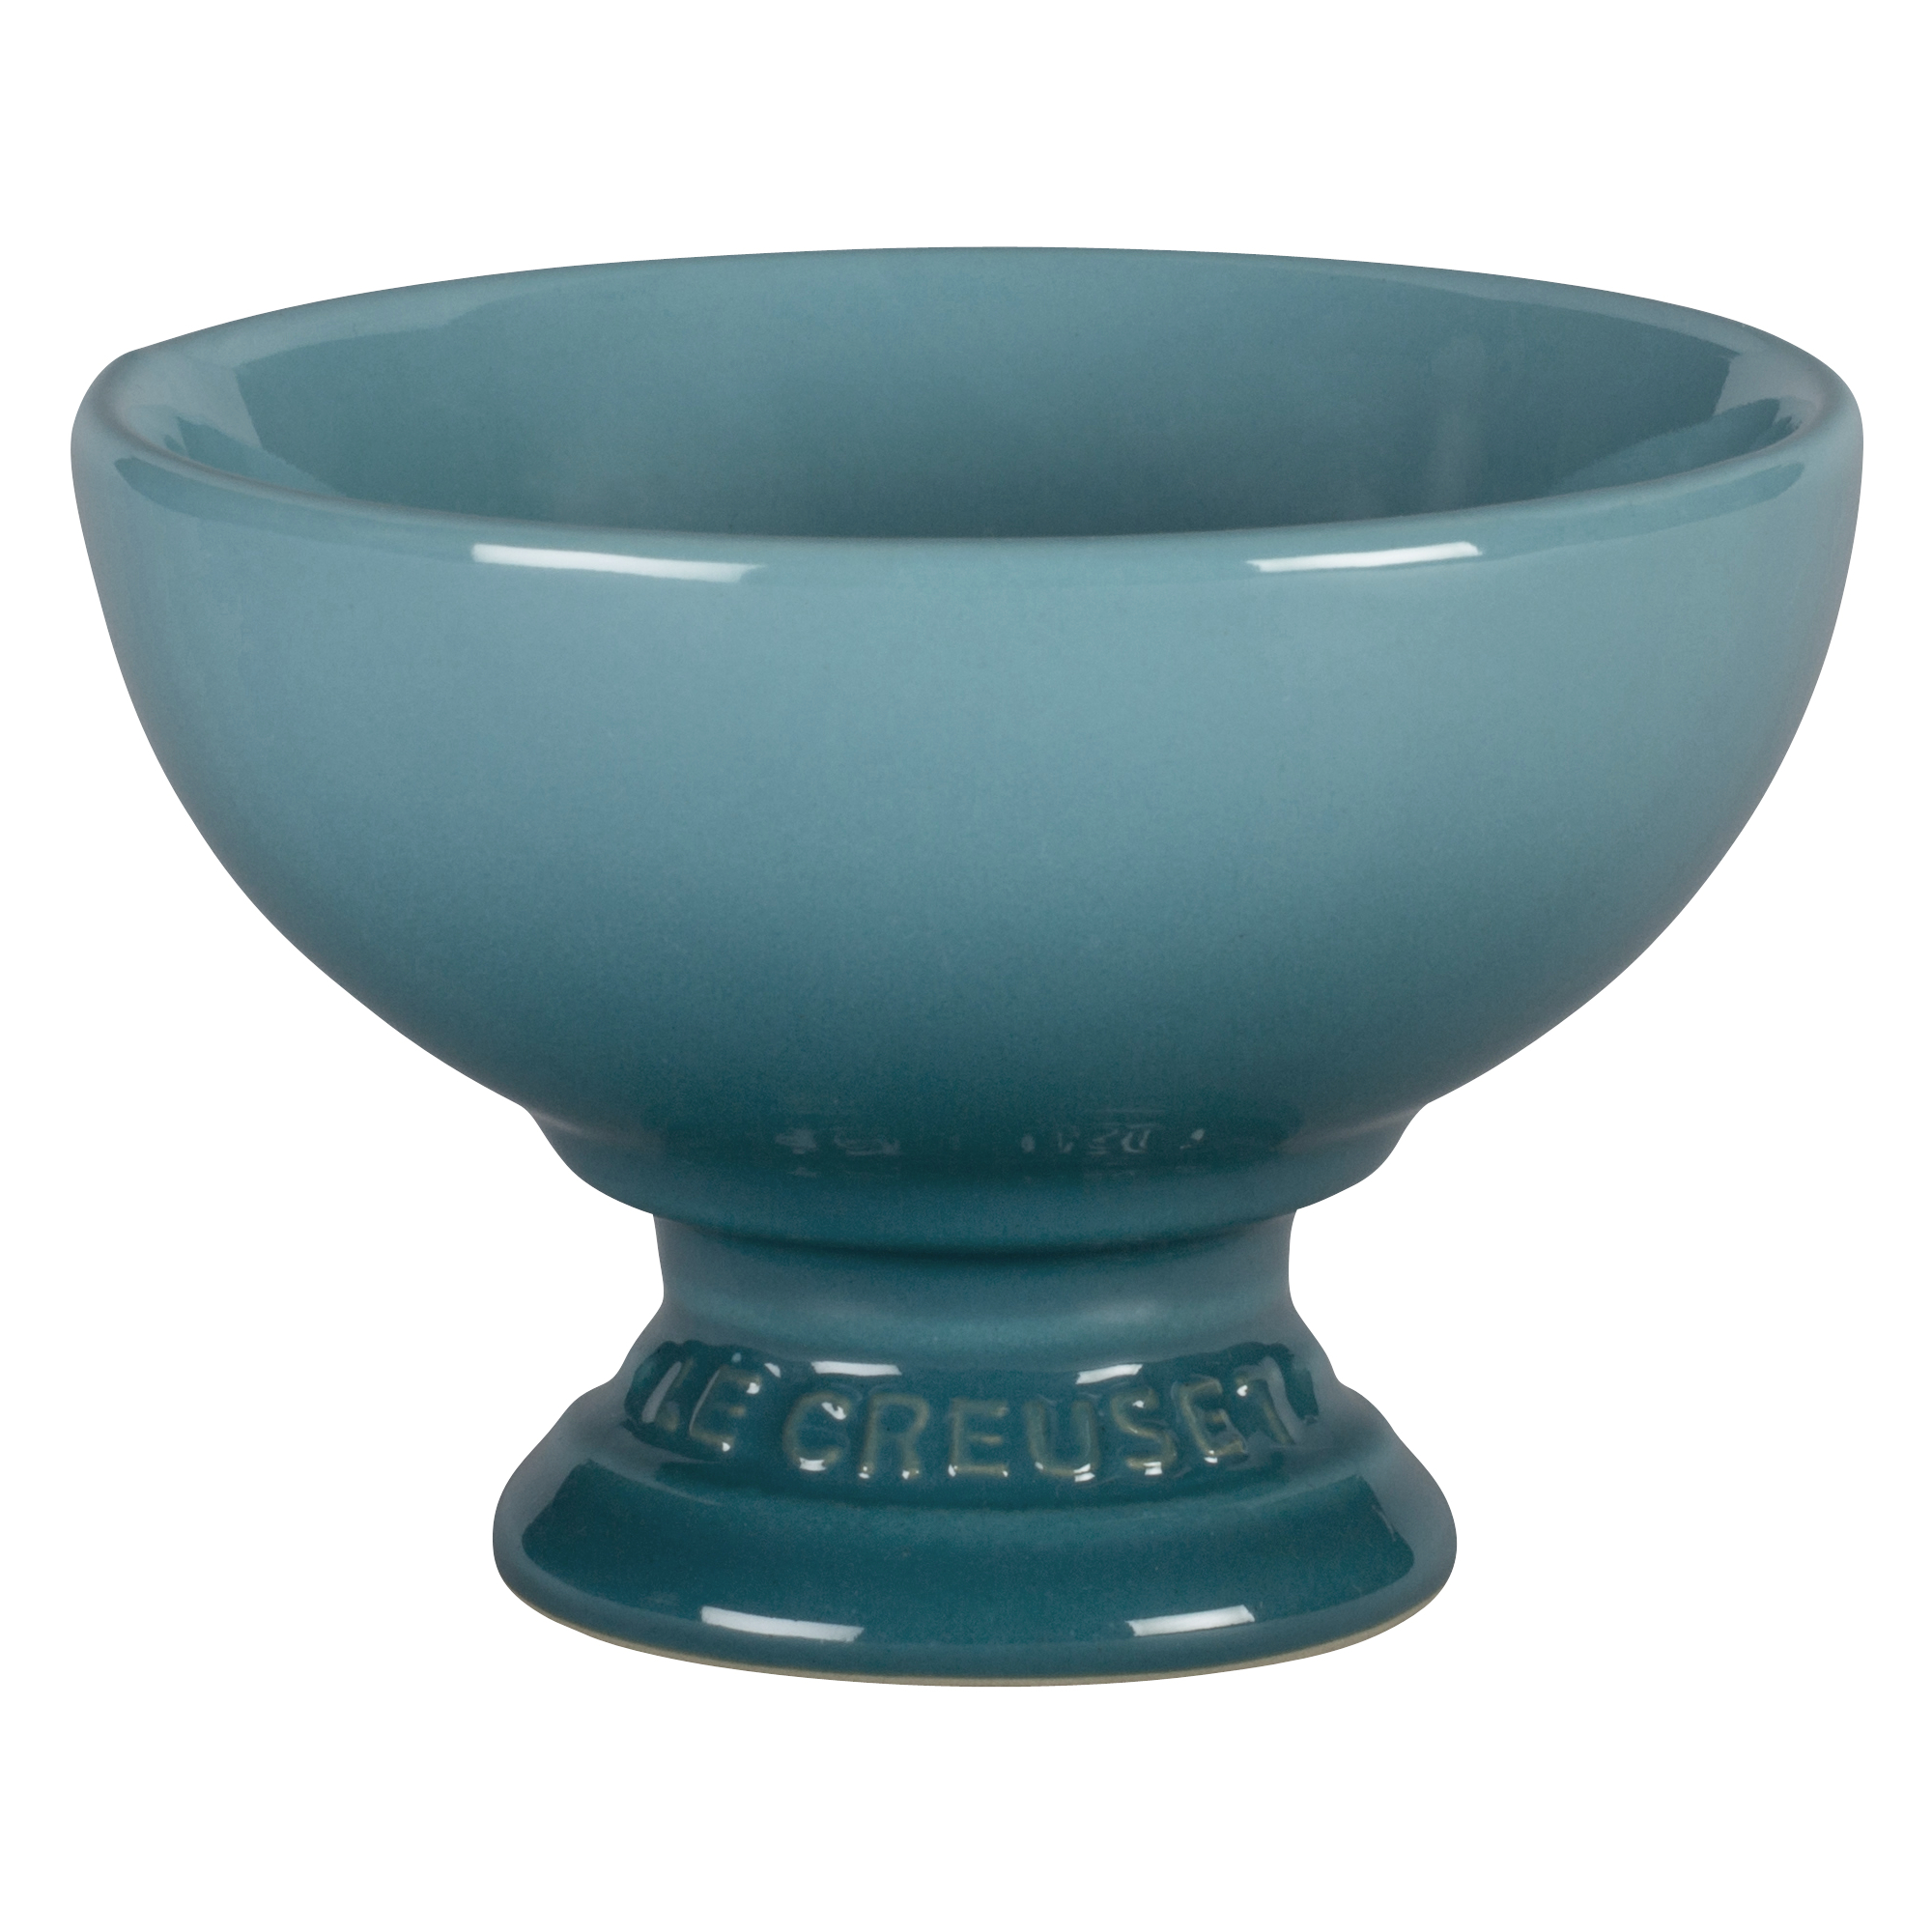 Le Creuset Caribbean Stoneware Footed Ice Cream Bowl